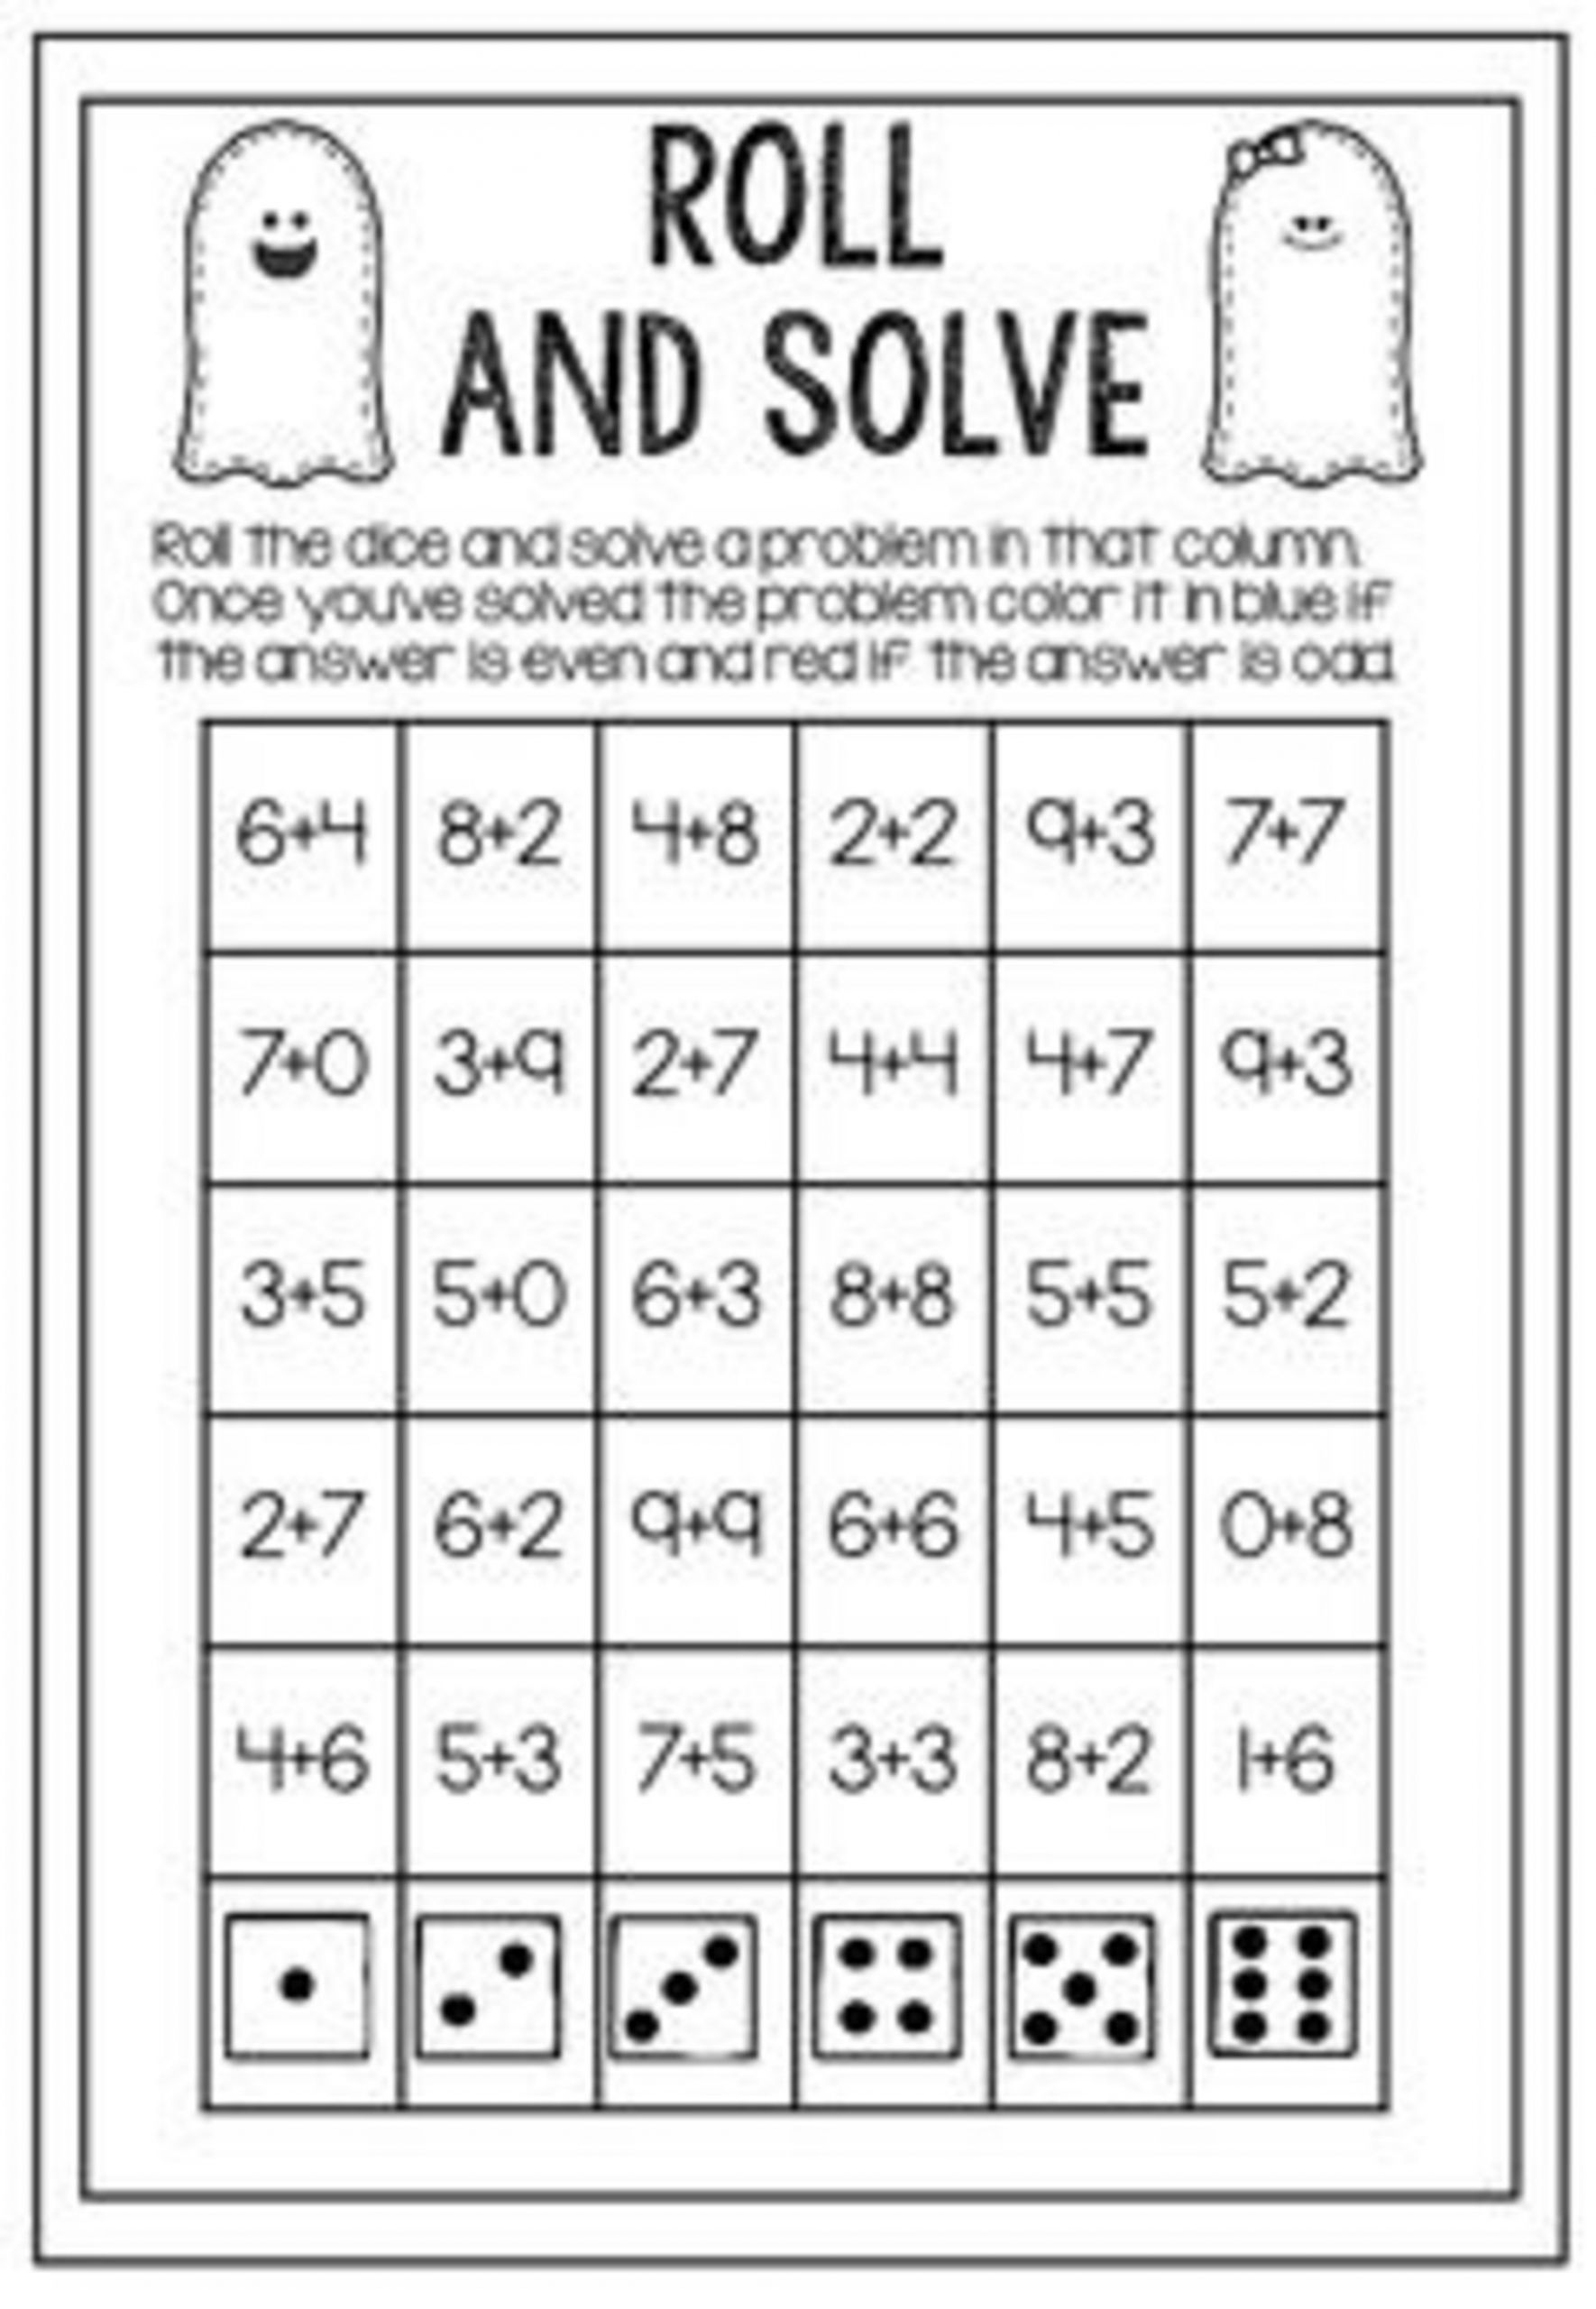 hight resolution of 5 Free Math Worksheets Second Grade 2 Addition Adding Missing Addend Sum  Under 10 - apocalomegaproductions.com